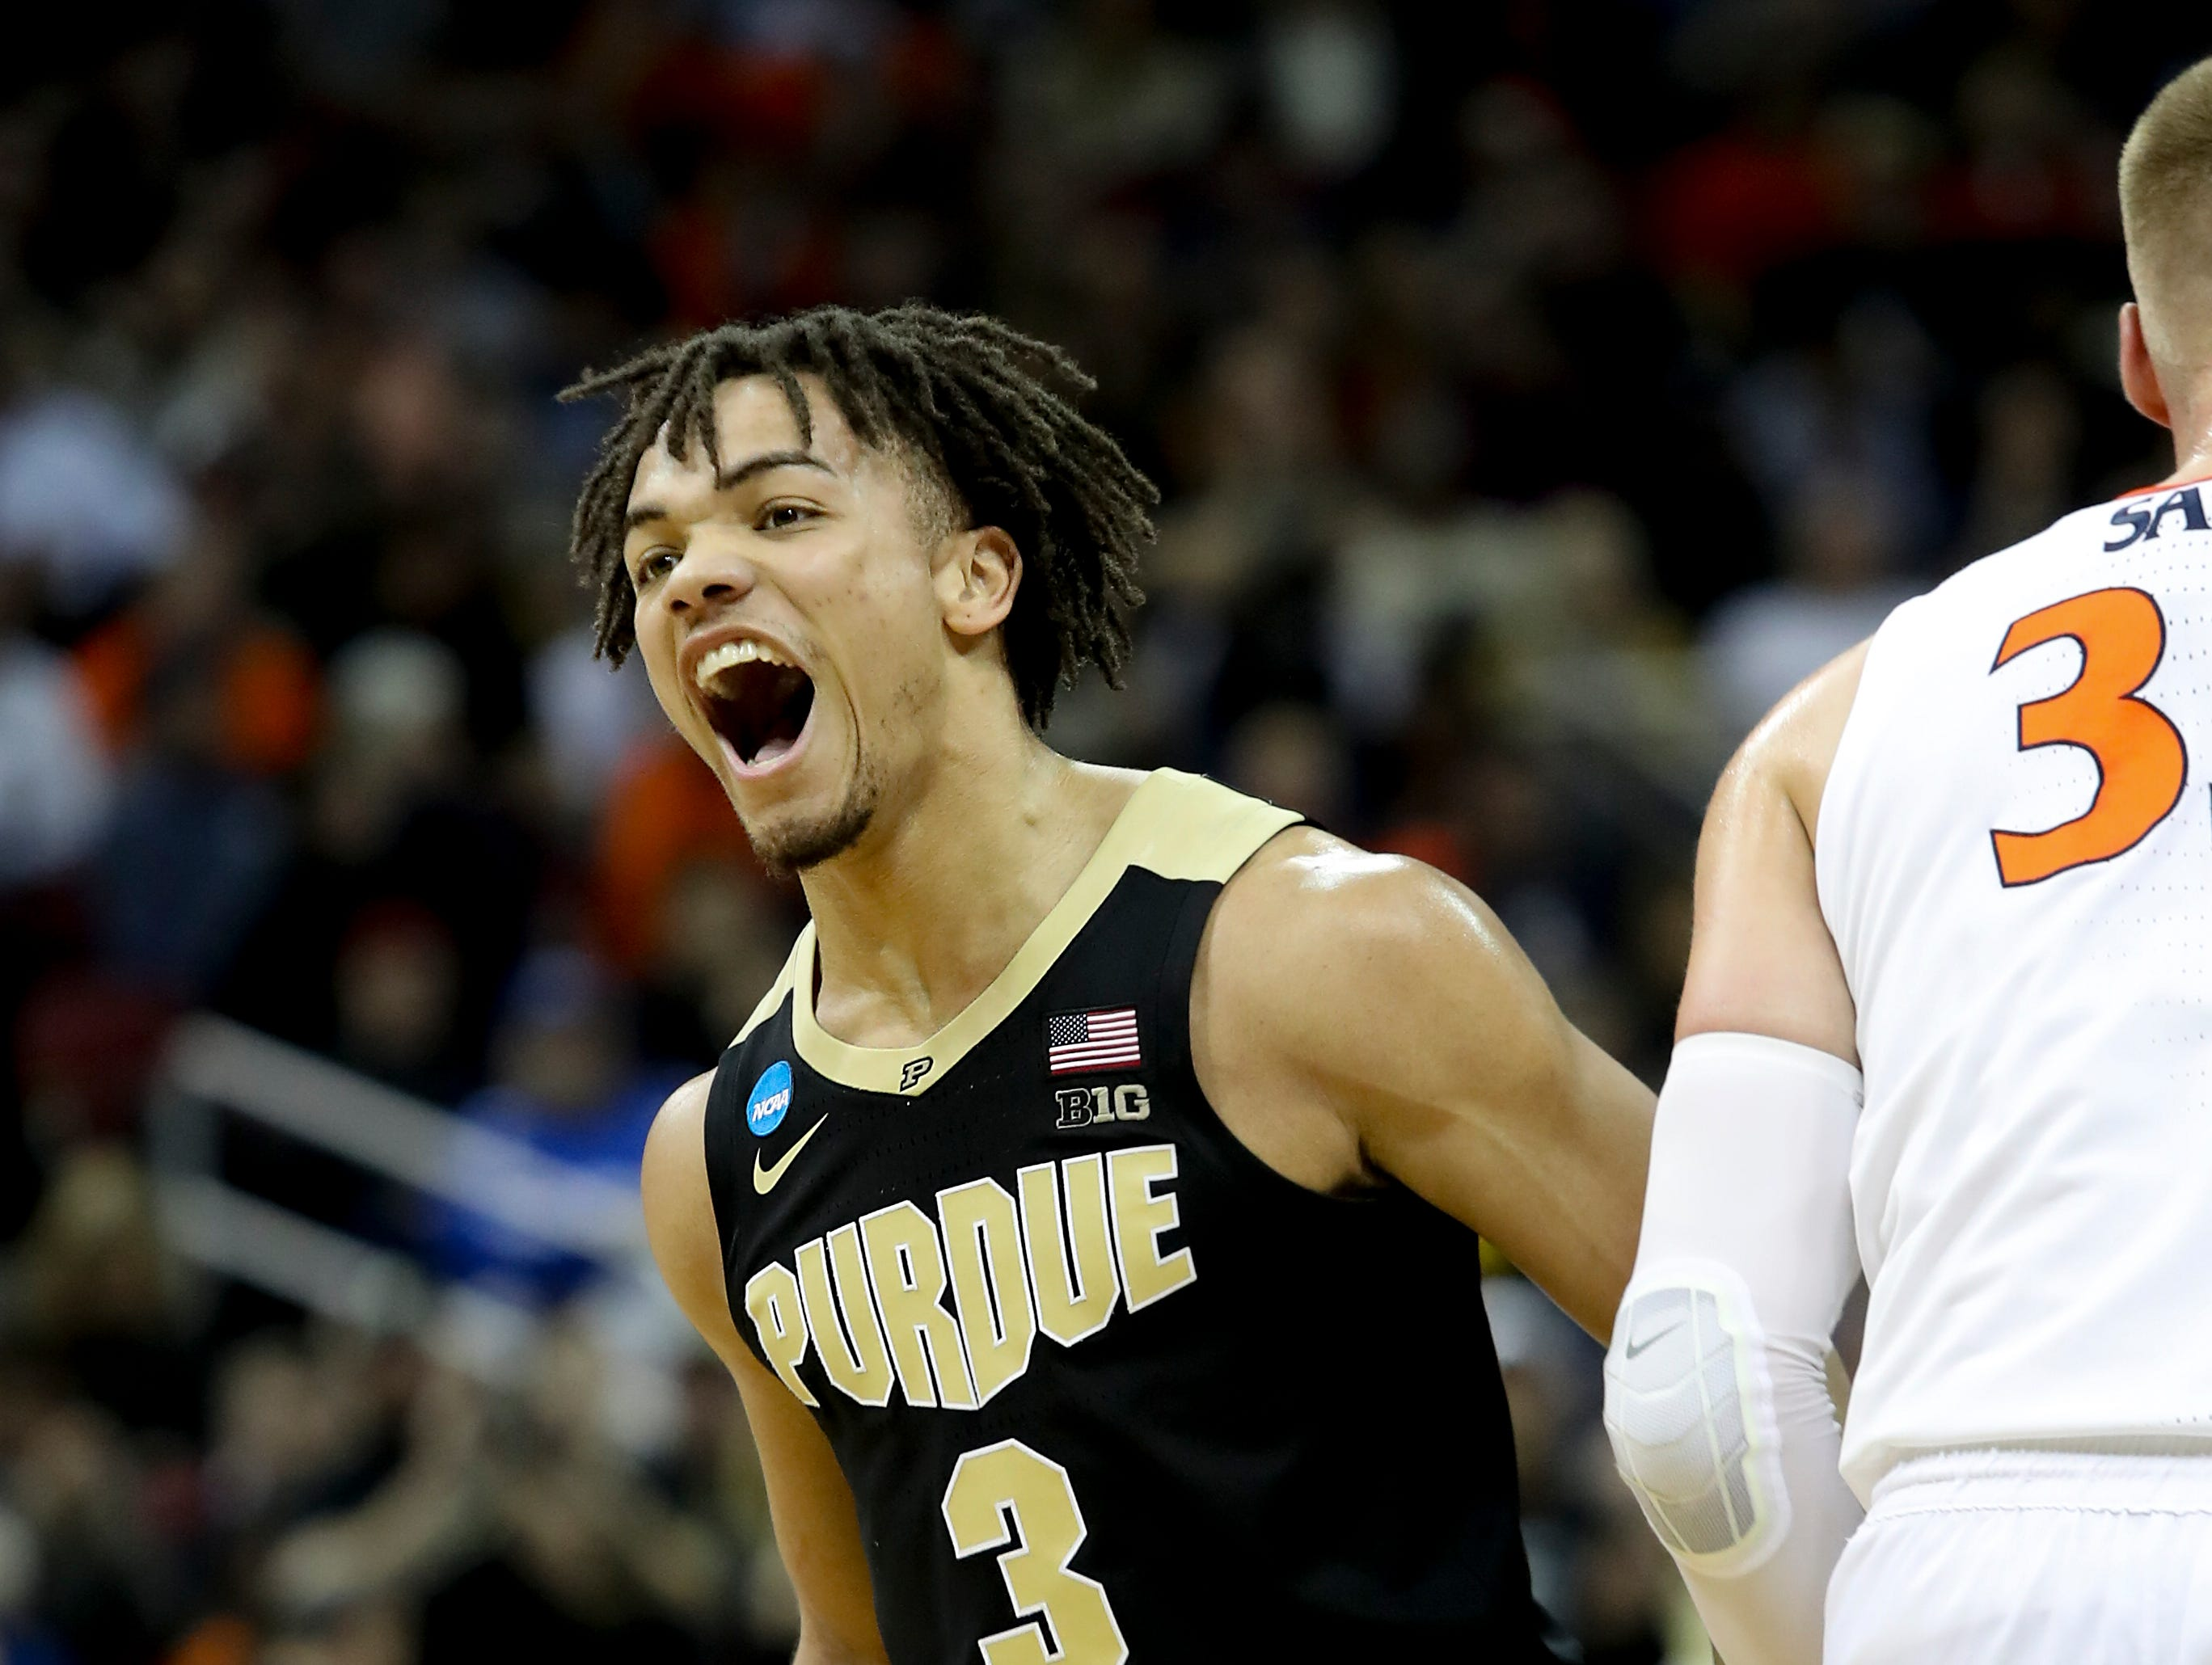 Purdue's Carsen Edwards celebrates after knocking down a three against Virginia on March 30 in the NCAA Elite 8.